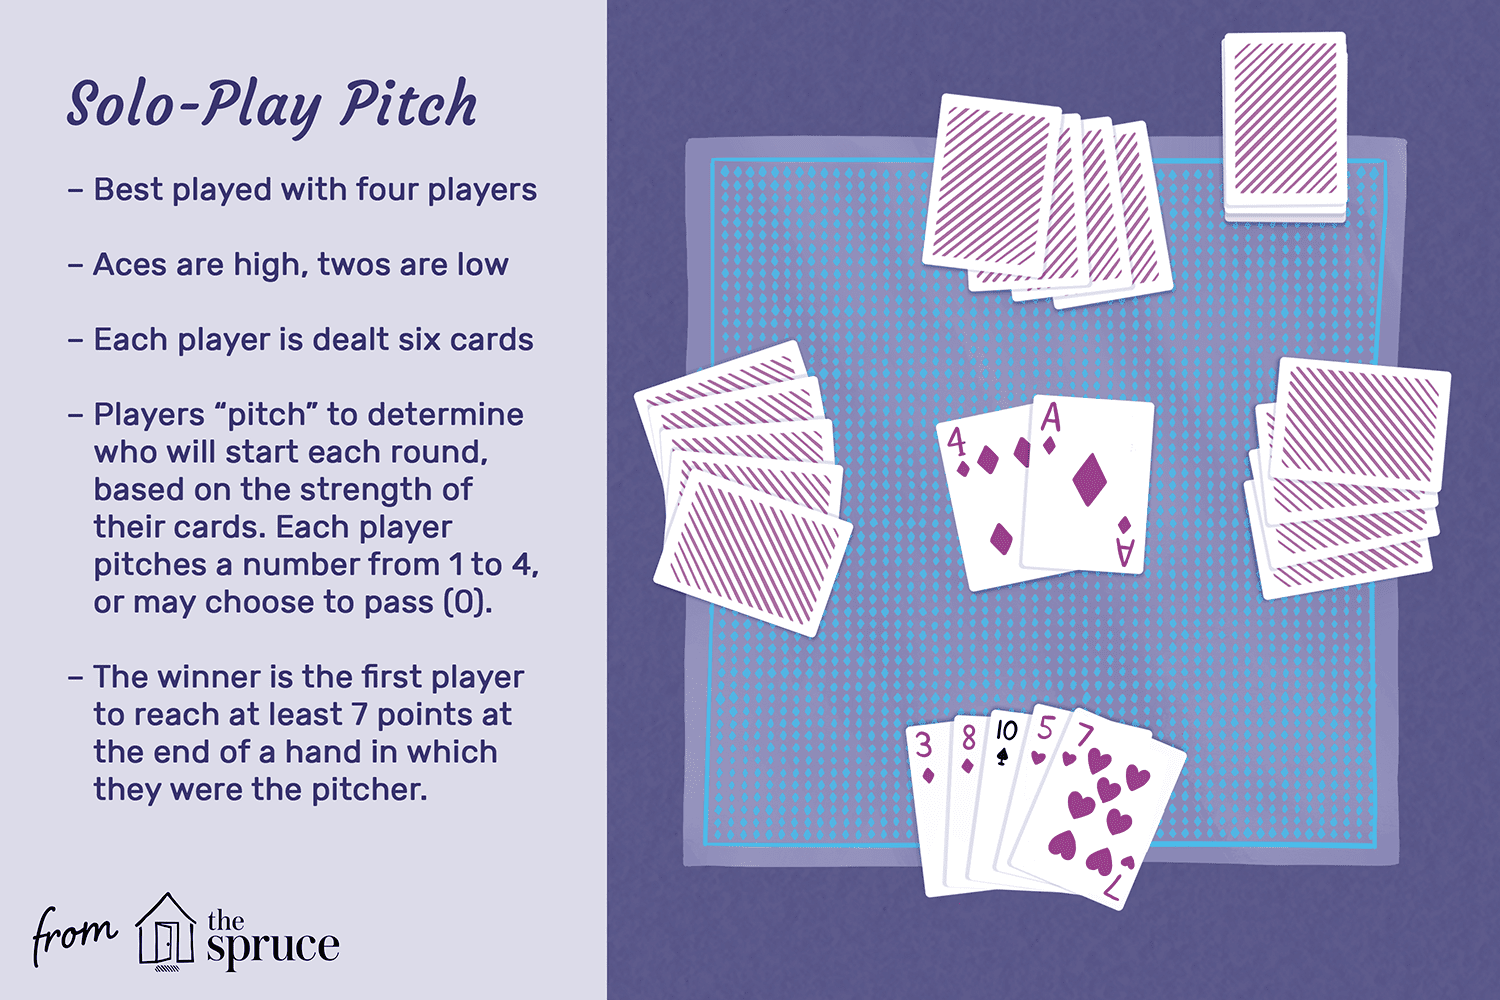 Illustration of solo-play pitch